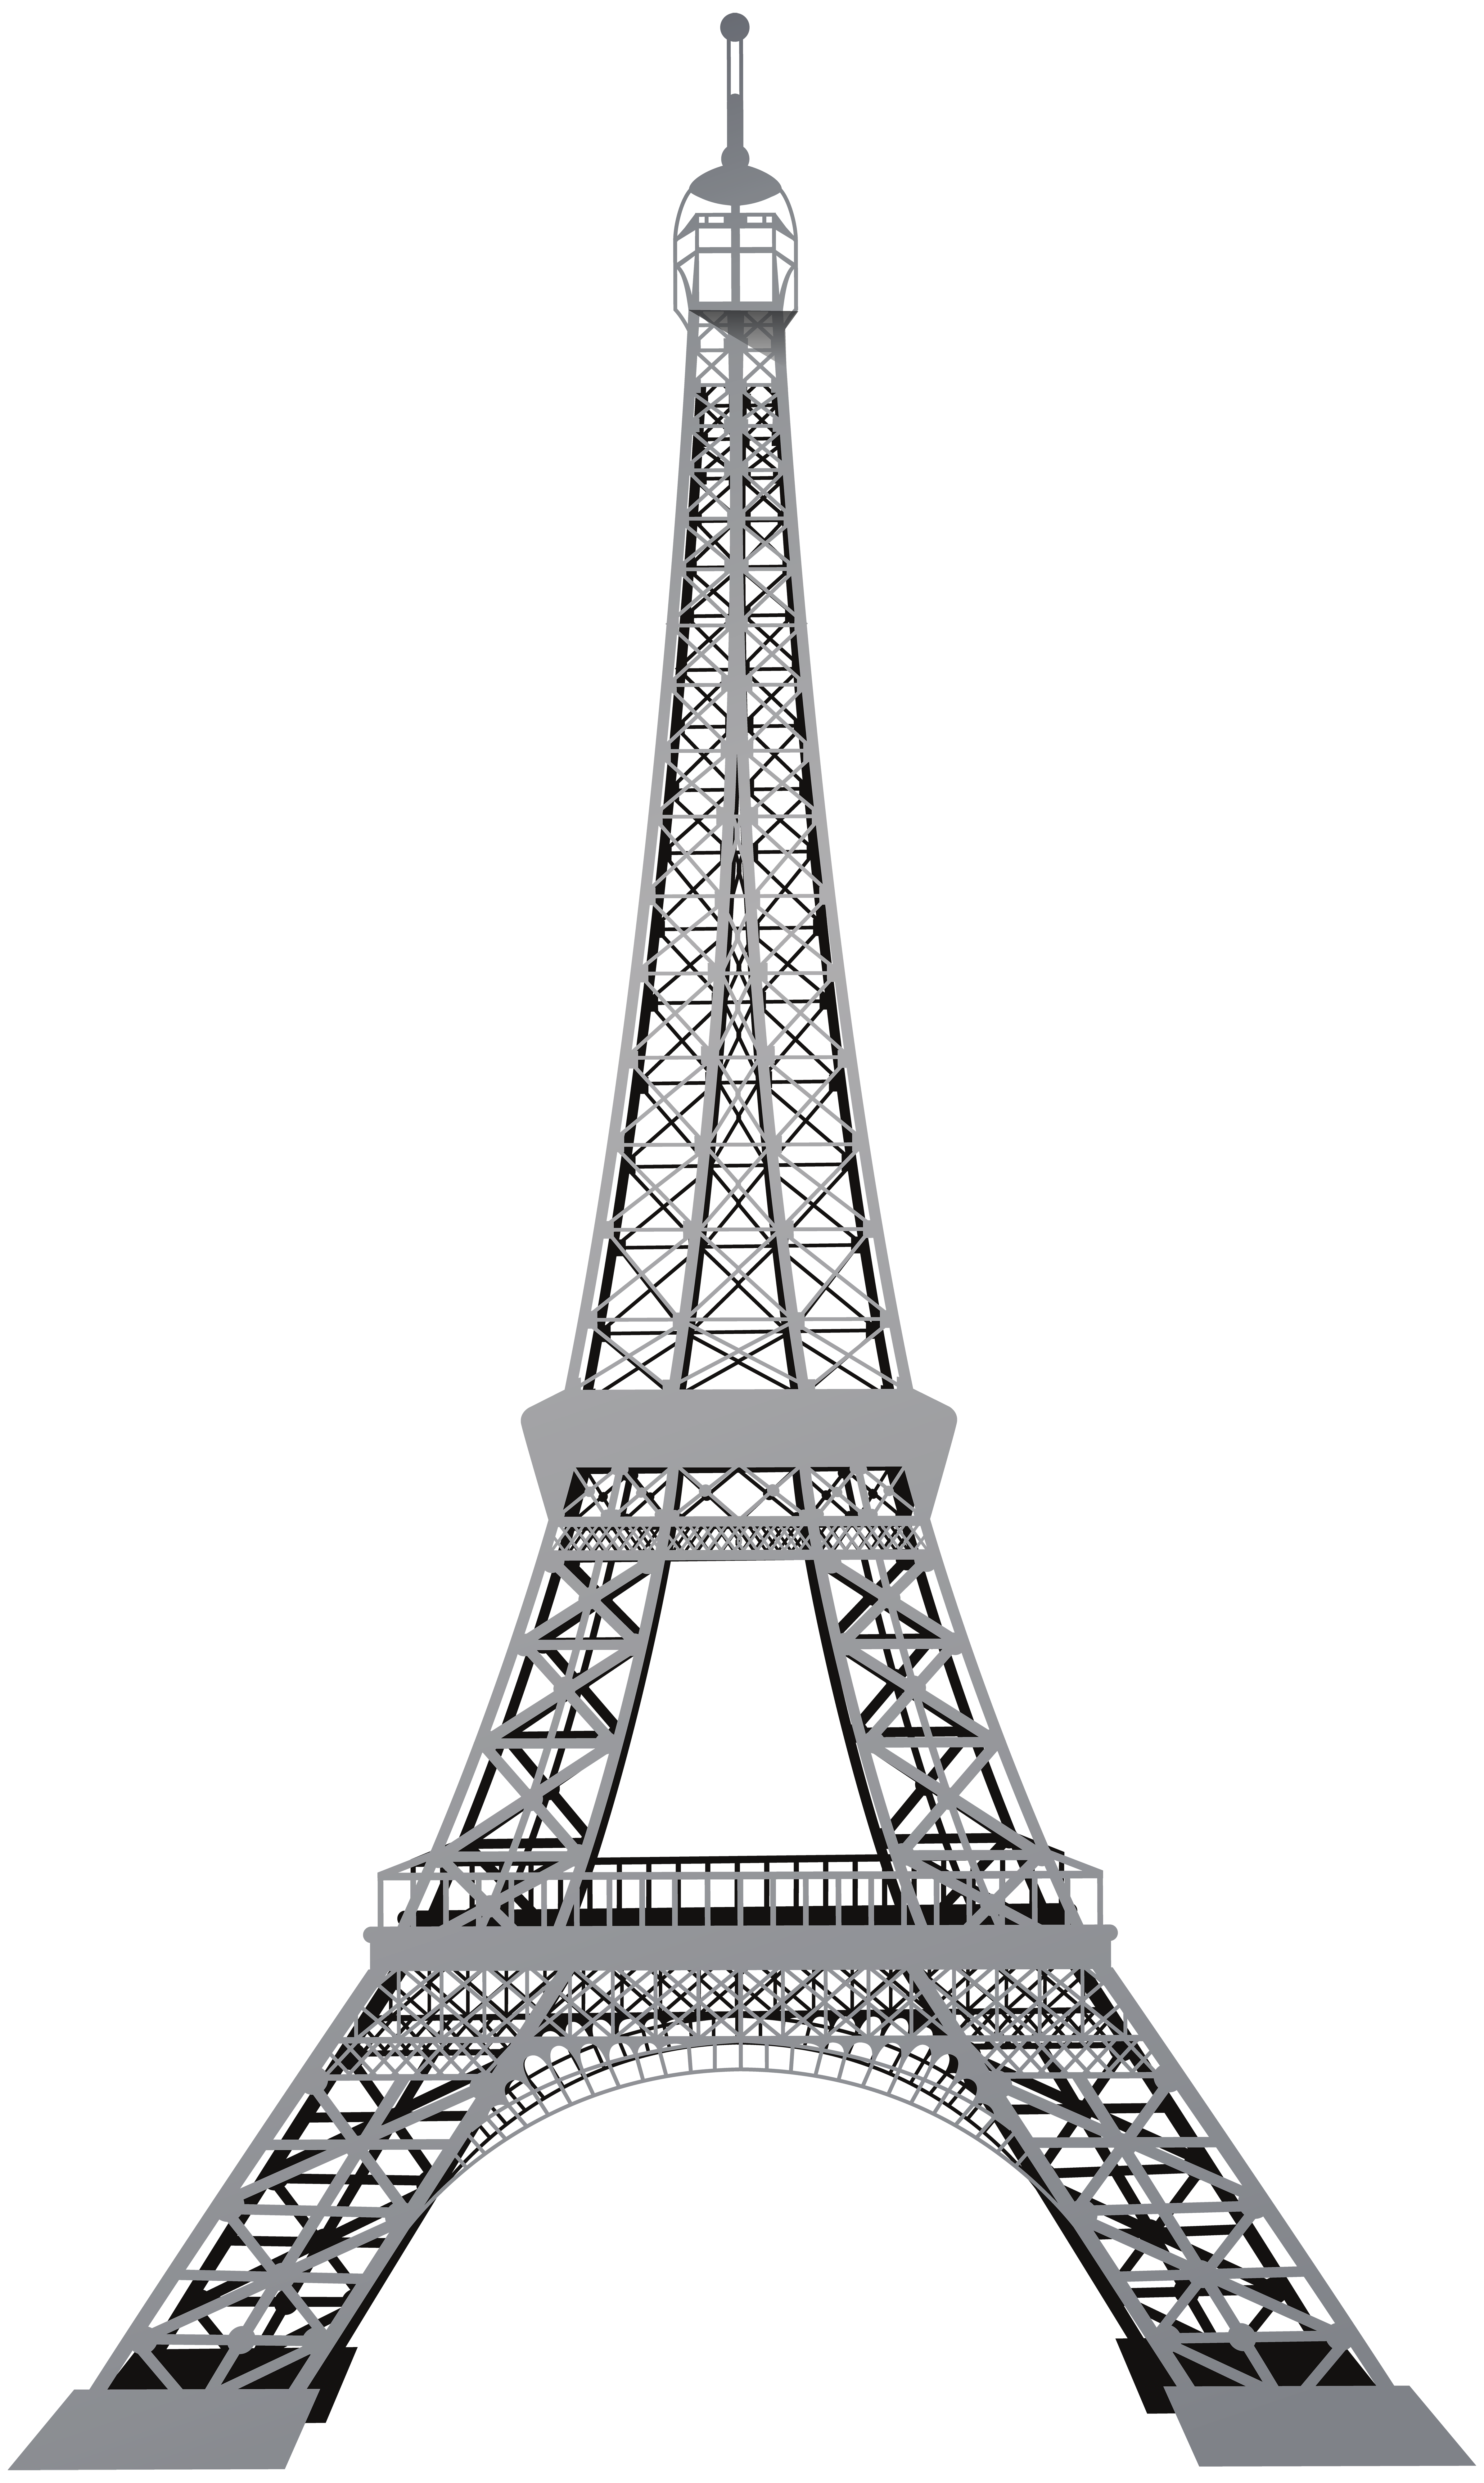 Eiffel Tower Png Black And White & Free Eiffel Tower Black ...